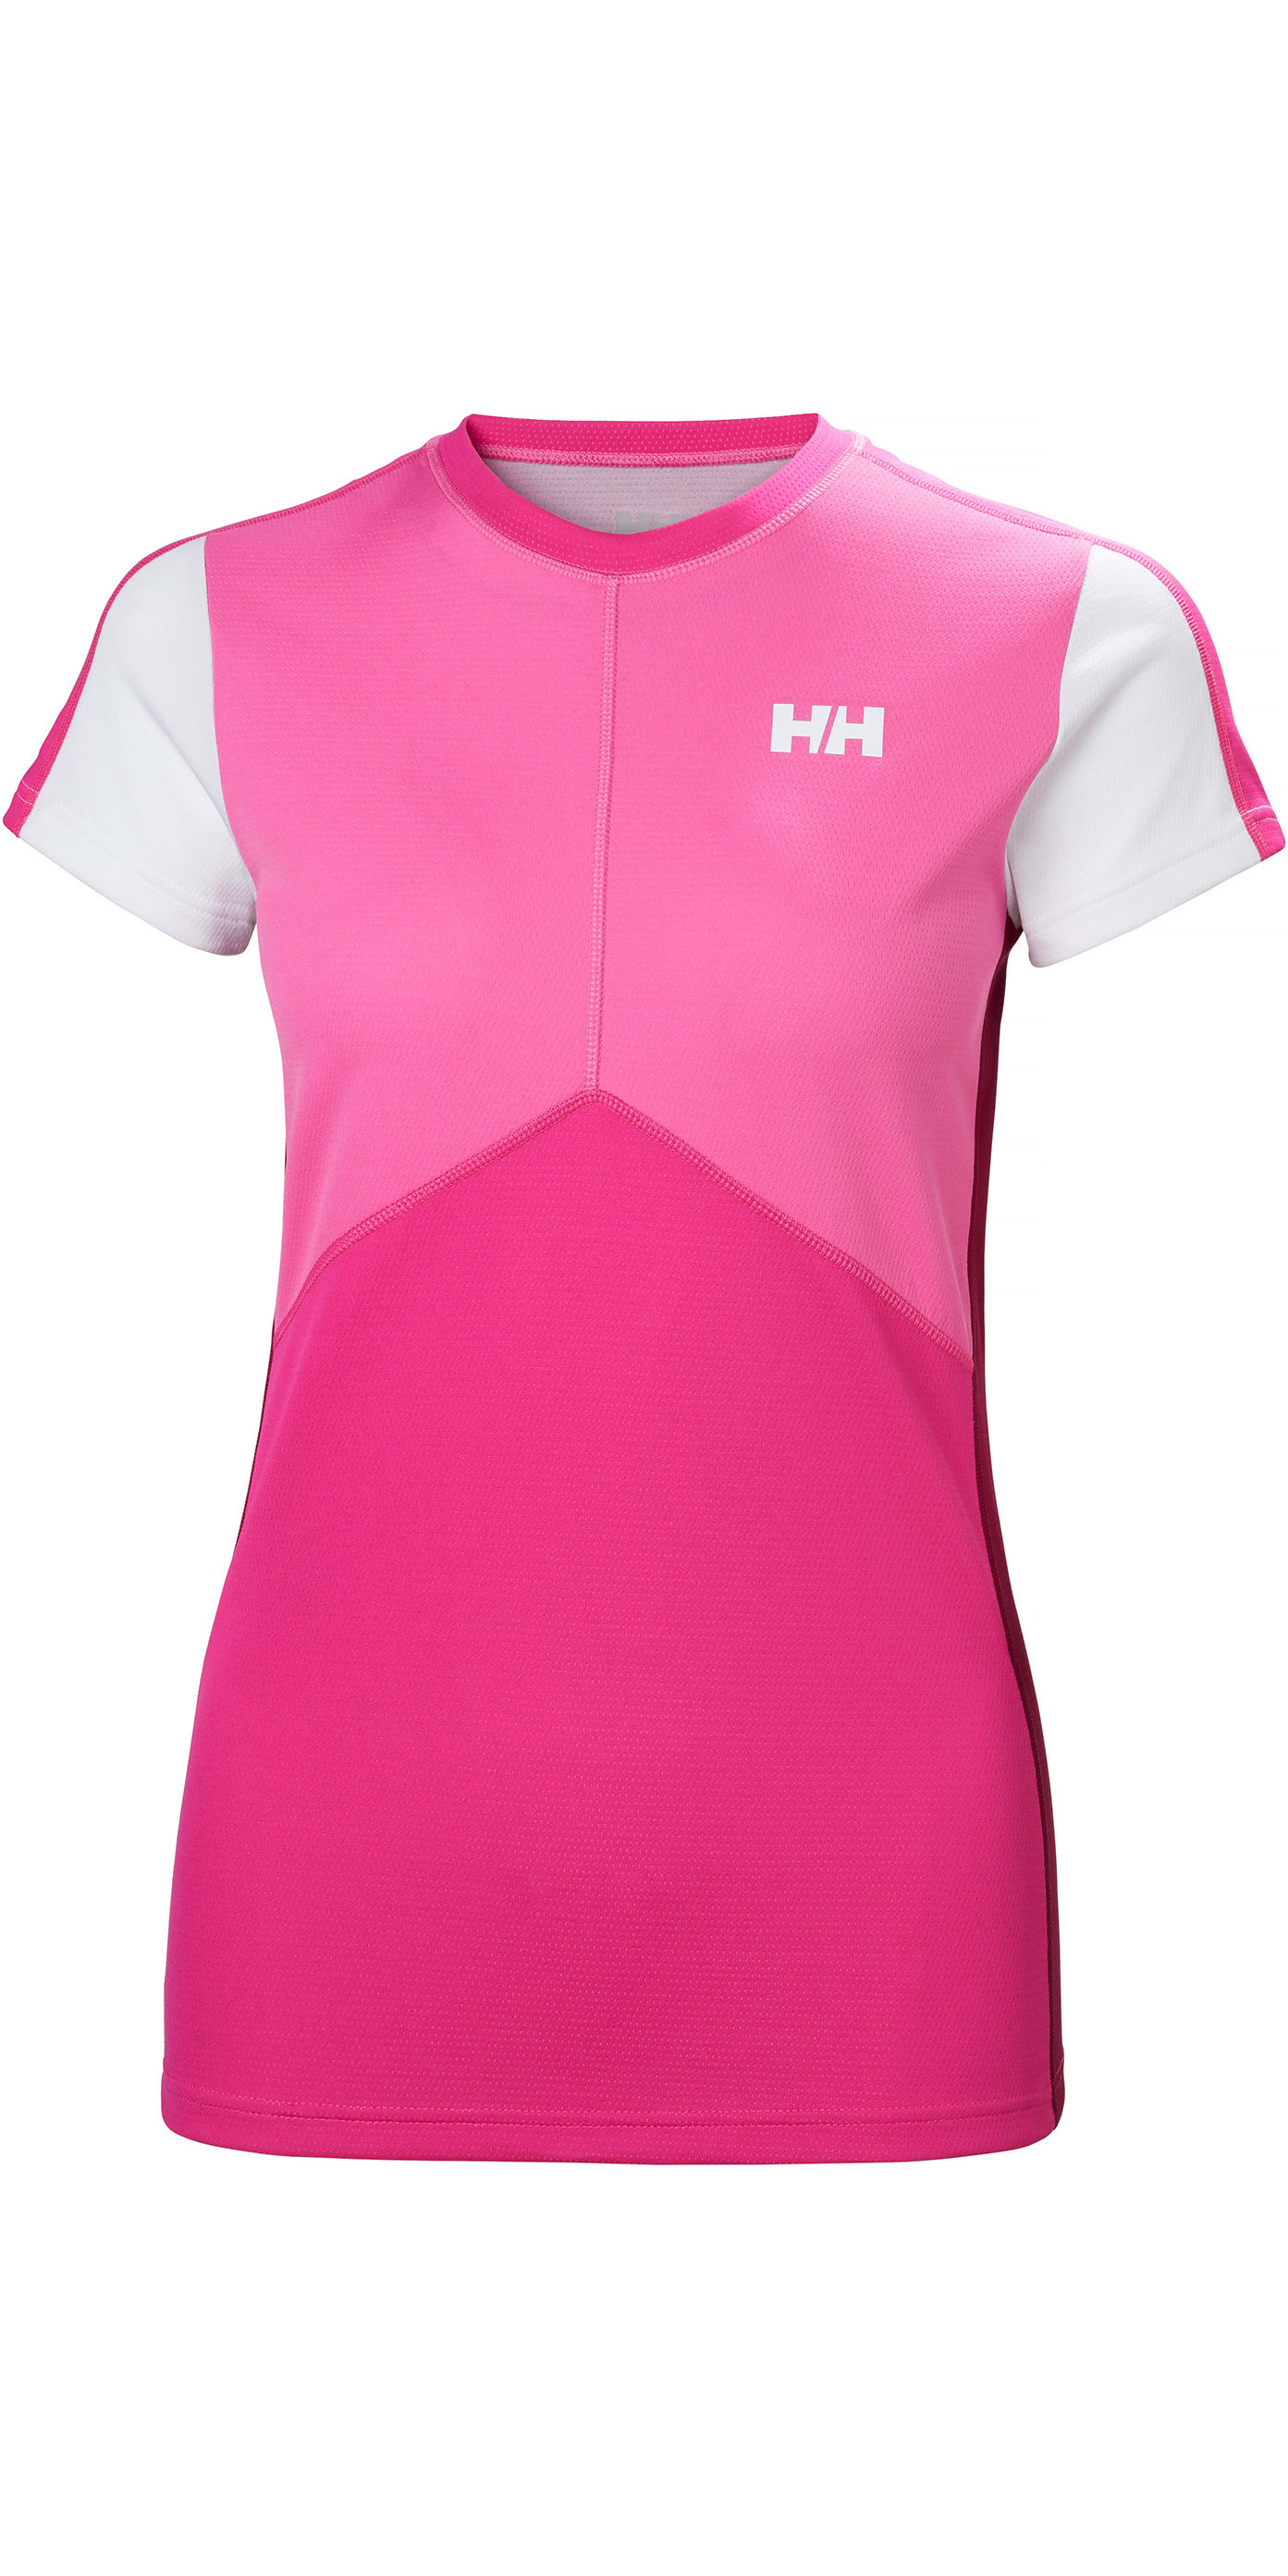 2a4cb742b06388 2019 Helly Hansen Womens Lifa Active Light Short Sleeve Top Dragon Fruit  49328 - Thermal Base | Wetsuit Outlet